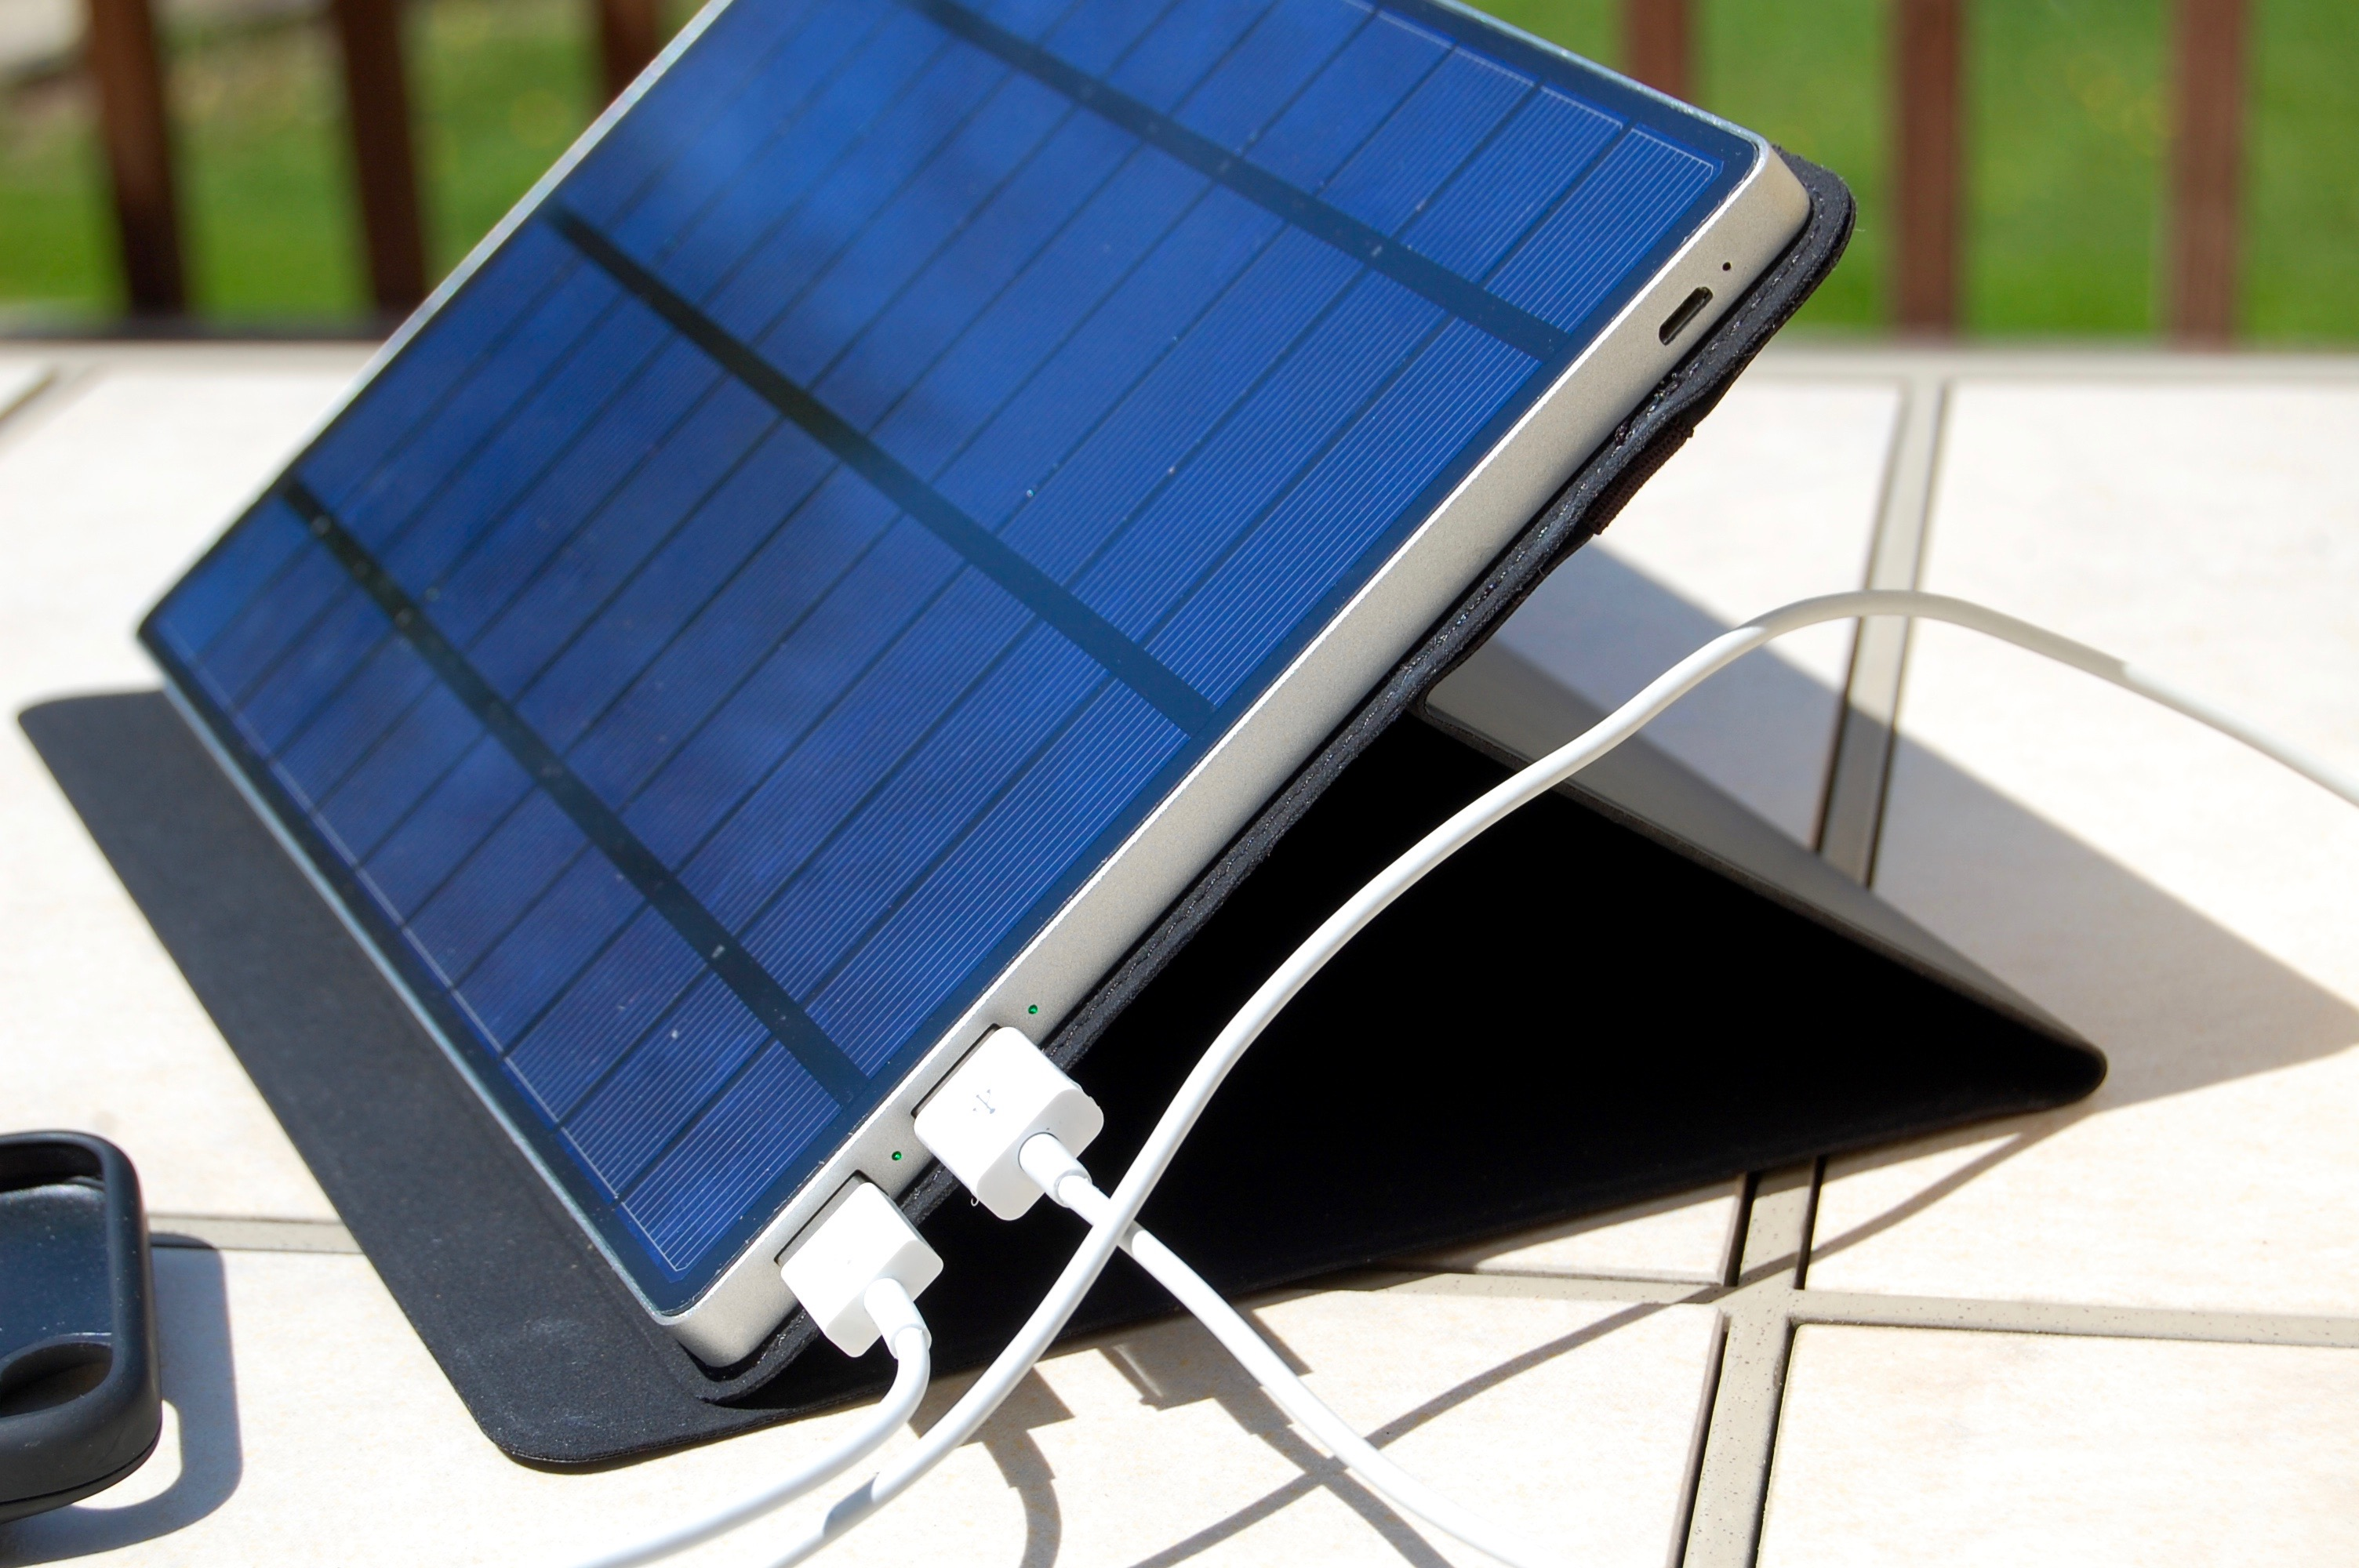 SolarTab Portable Solar Panel is a Bright Spot in Outdoor Charging Solutions – The Mac Observer